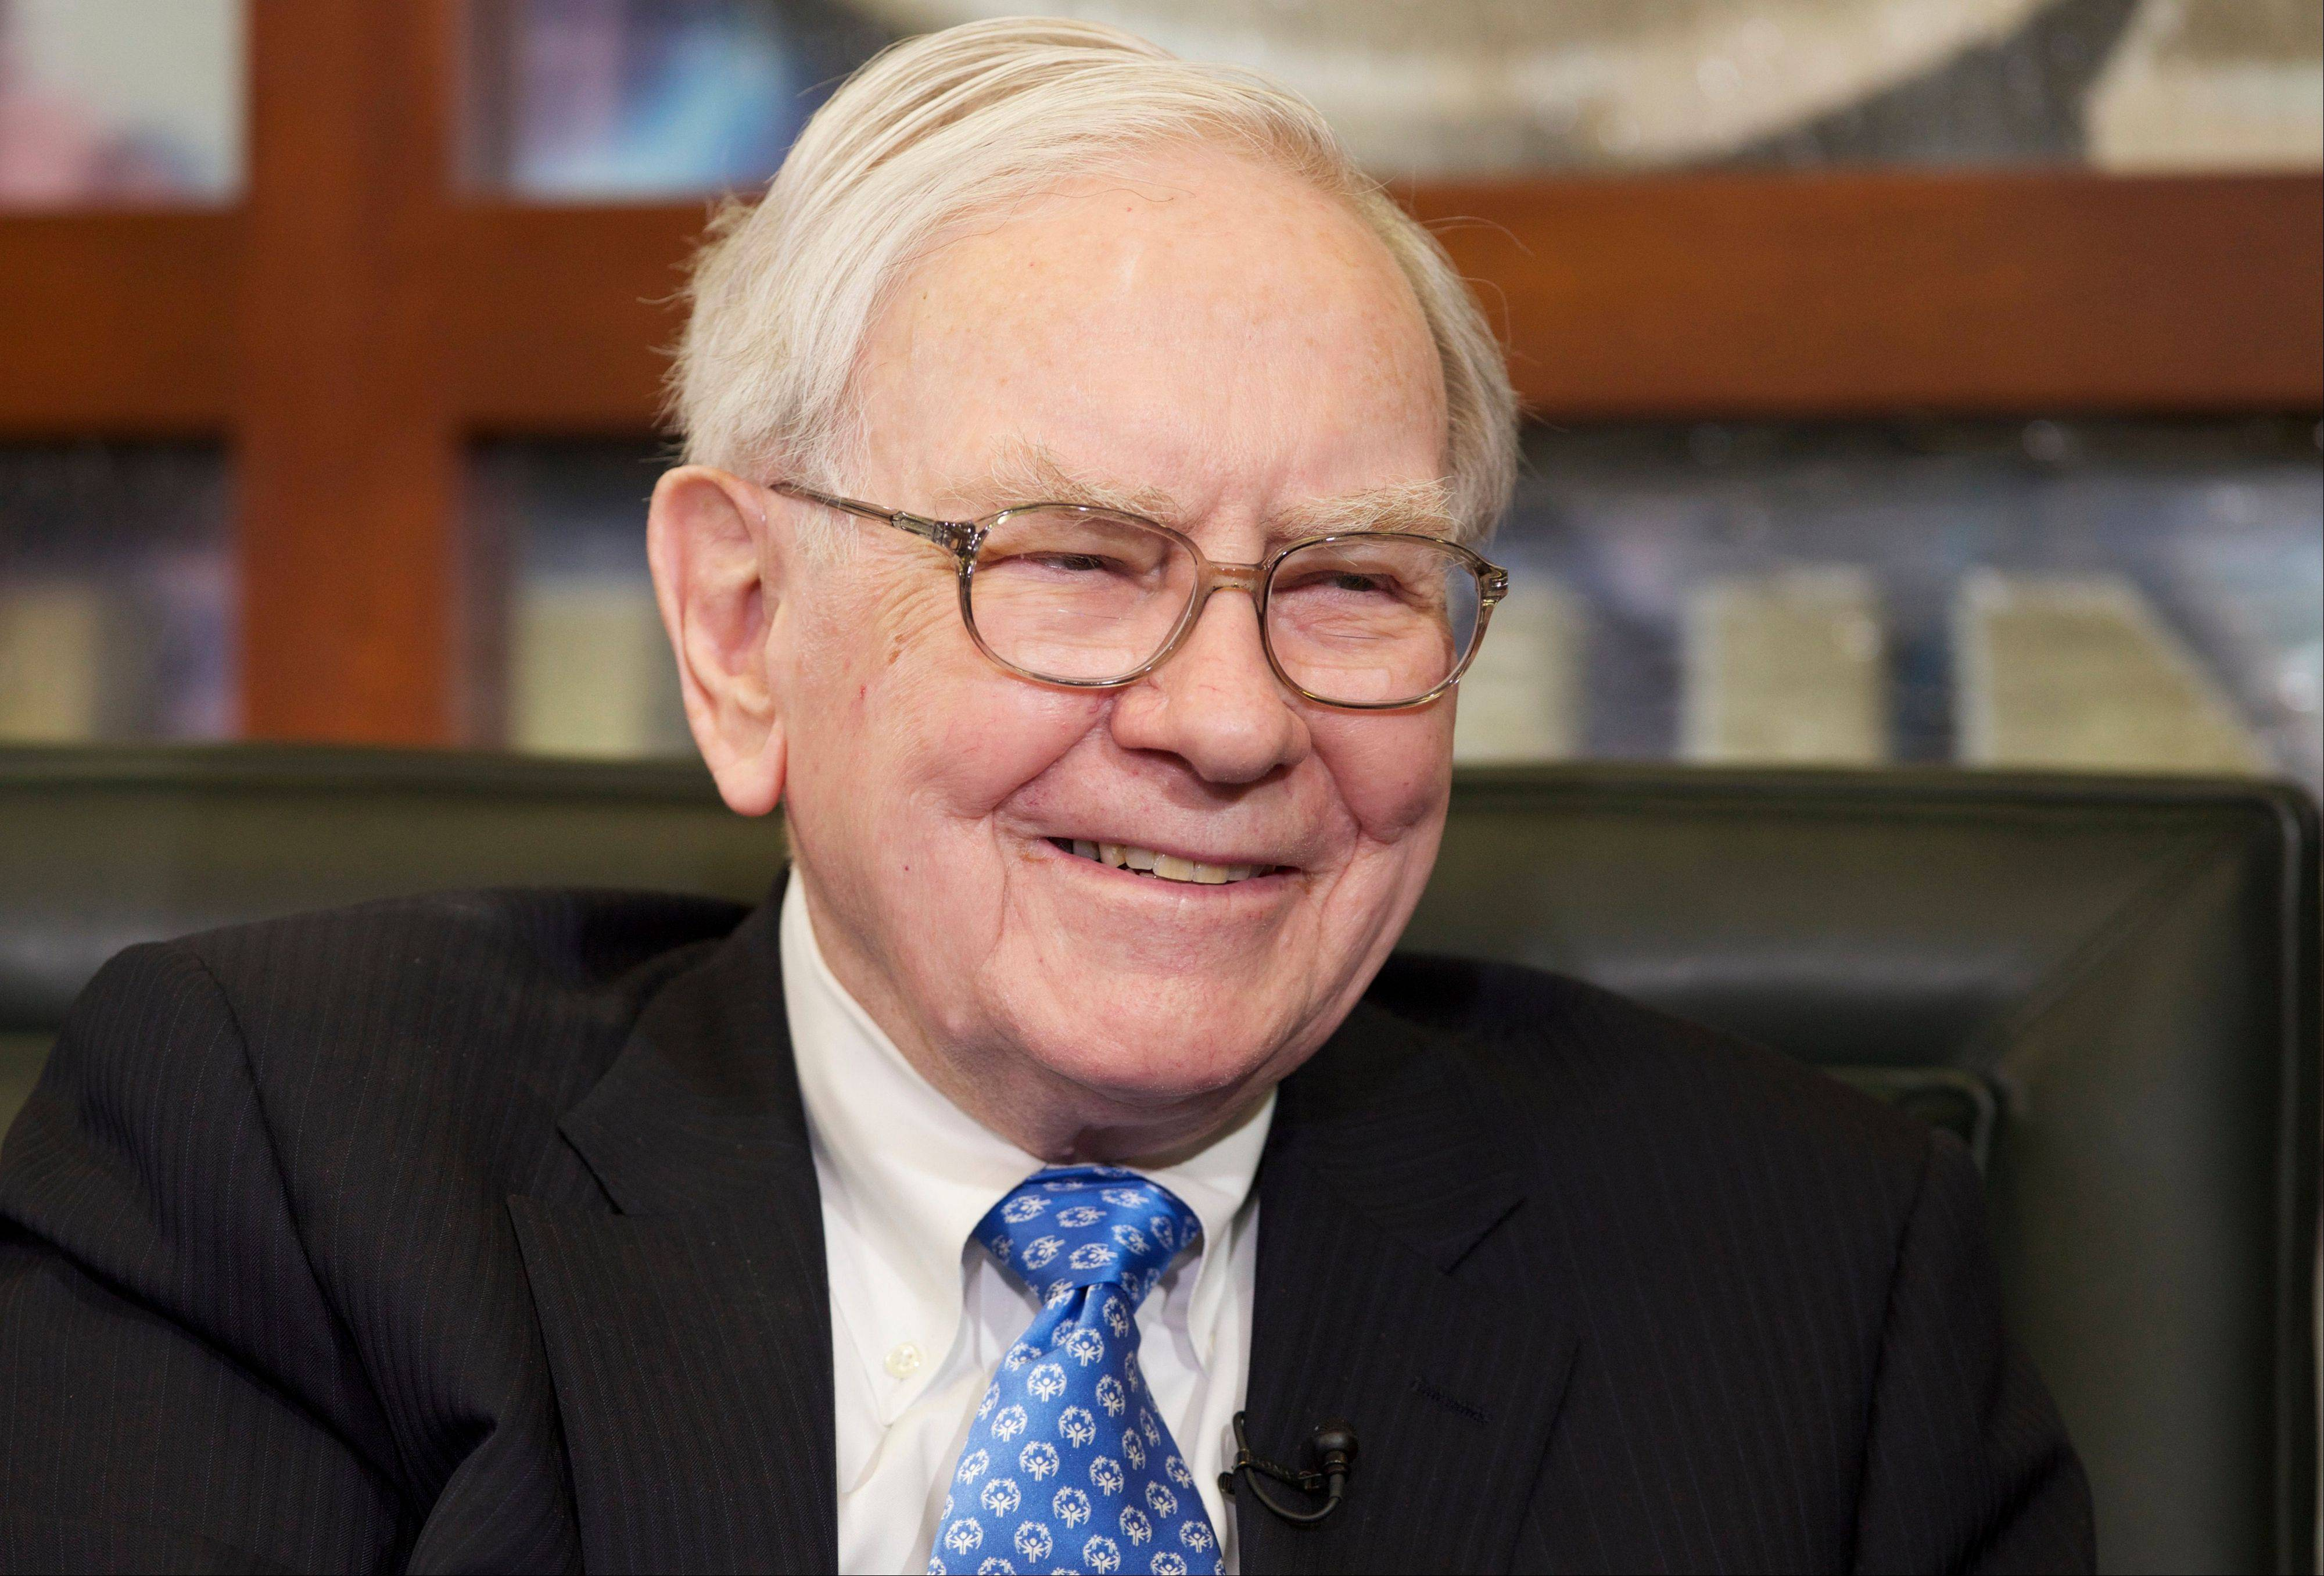 A free online course that starts Monday will offer students the chance to learn about giving from Warren Buffett and help decide how to spend more than $100,000 of his sister's money.